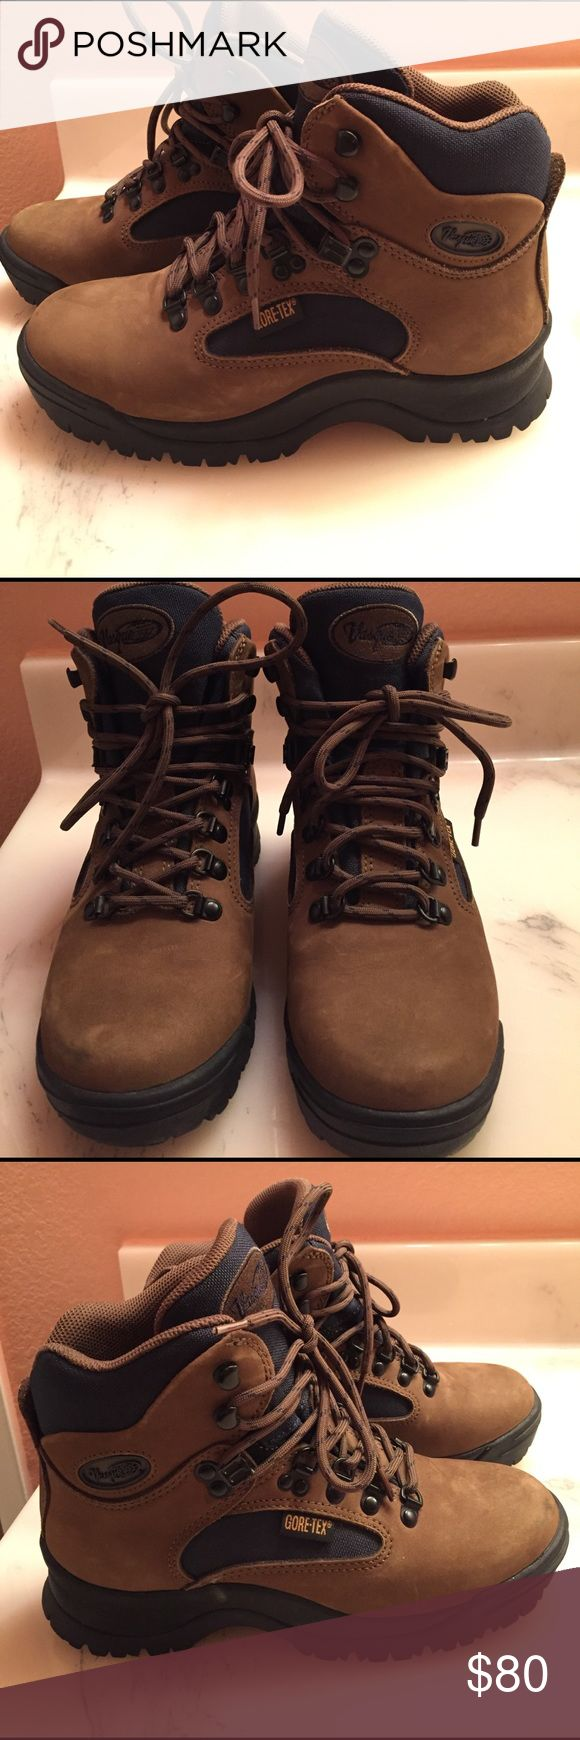 Hiking Boots - Red wing - Excellent Condition Red Wing Hiking Boots - gore Tex - Excellent Condition - only worn once Red Wing Shoes Shoes Winter & Rain Boots